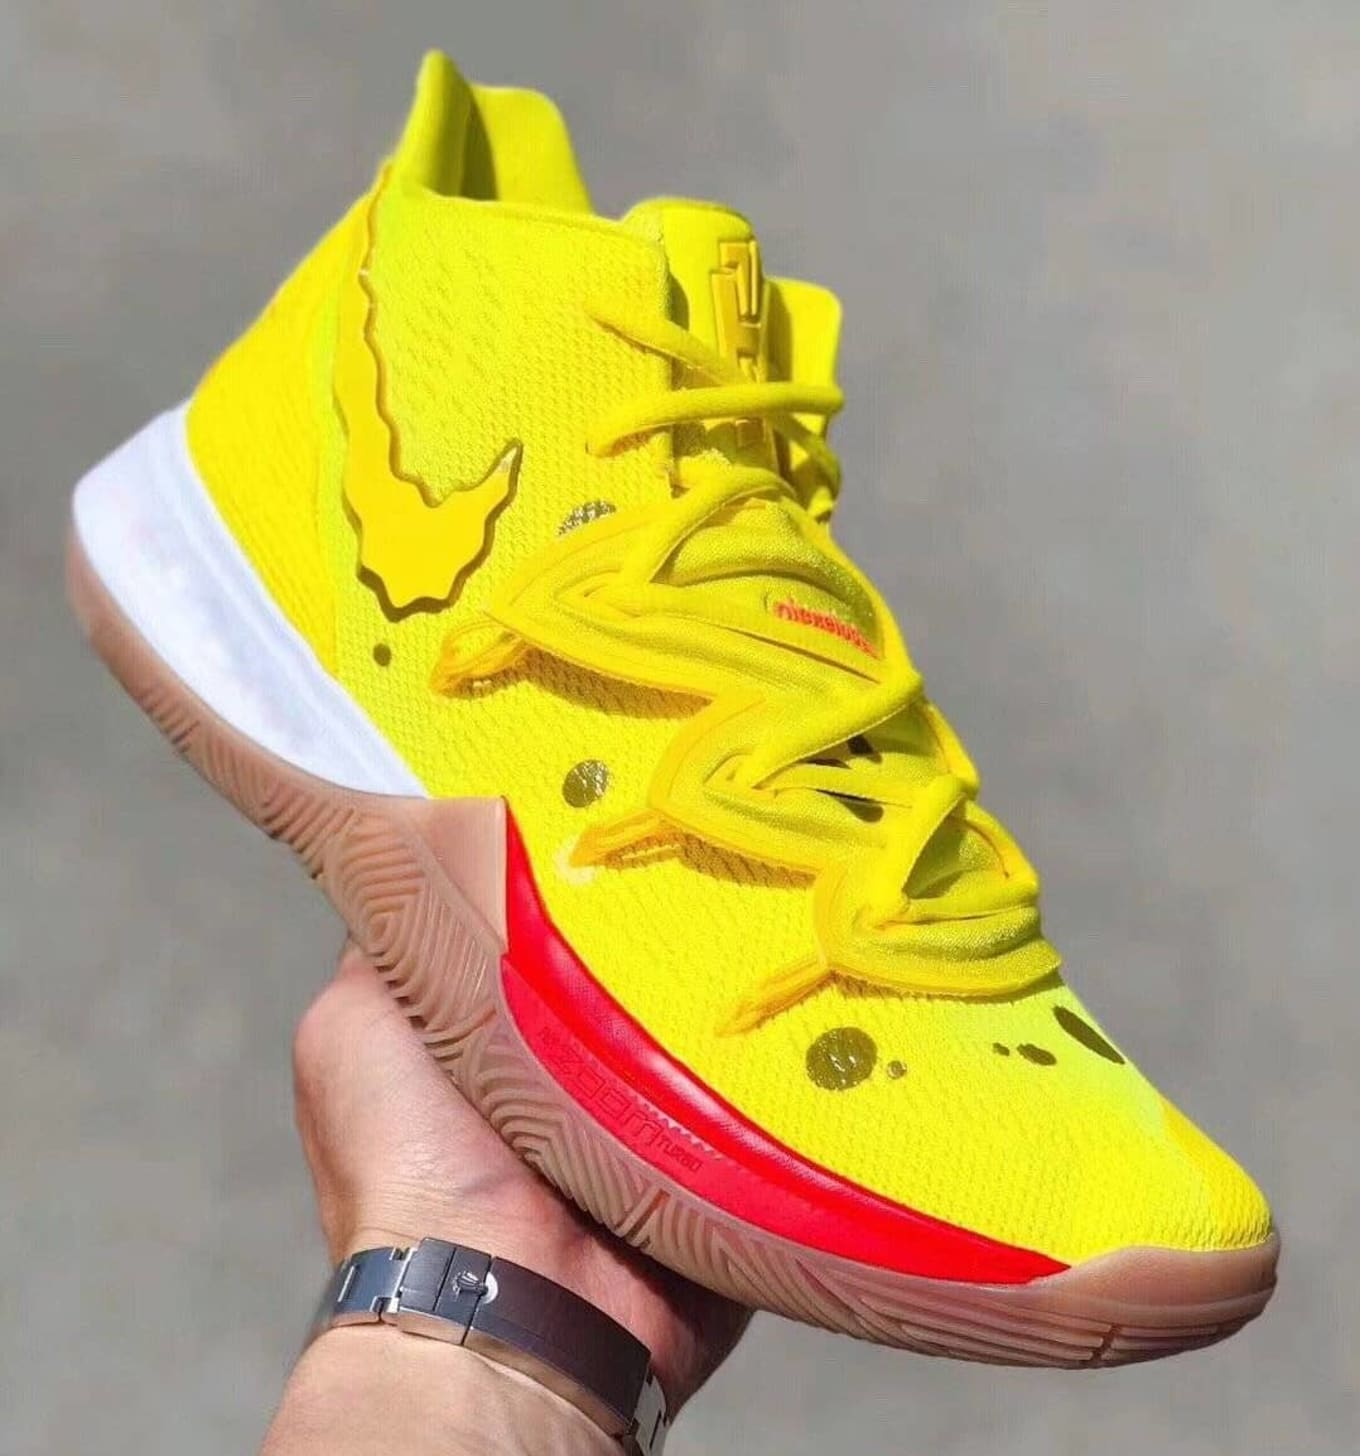 9a584901a1 Kyrie Irving Teams Up with SpongeBob SquarePants for Sneaker Collab. Nike  and Nickelodeon bring Nautical Nonsense to the Kyrie 5.